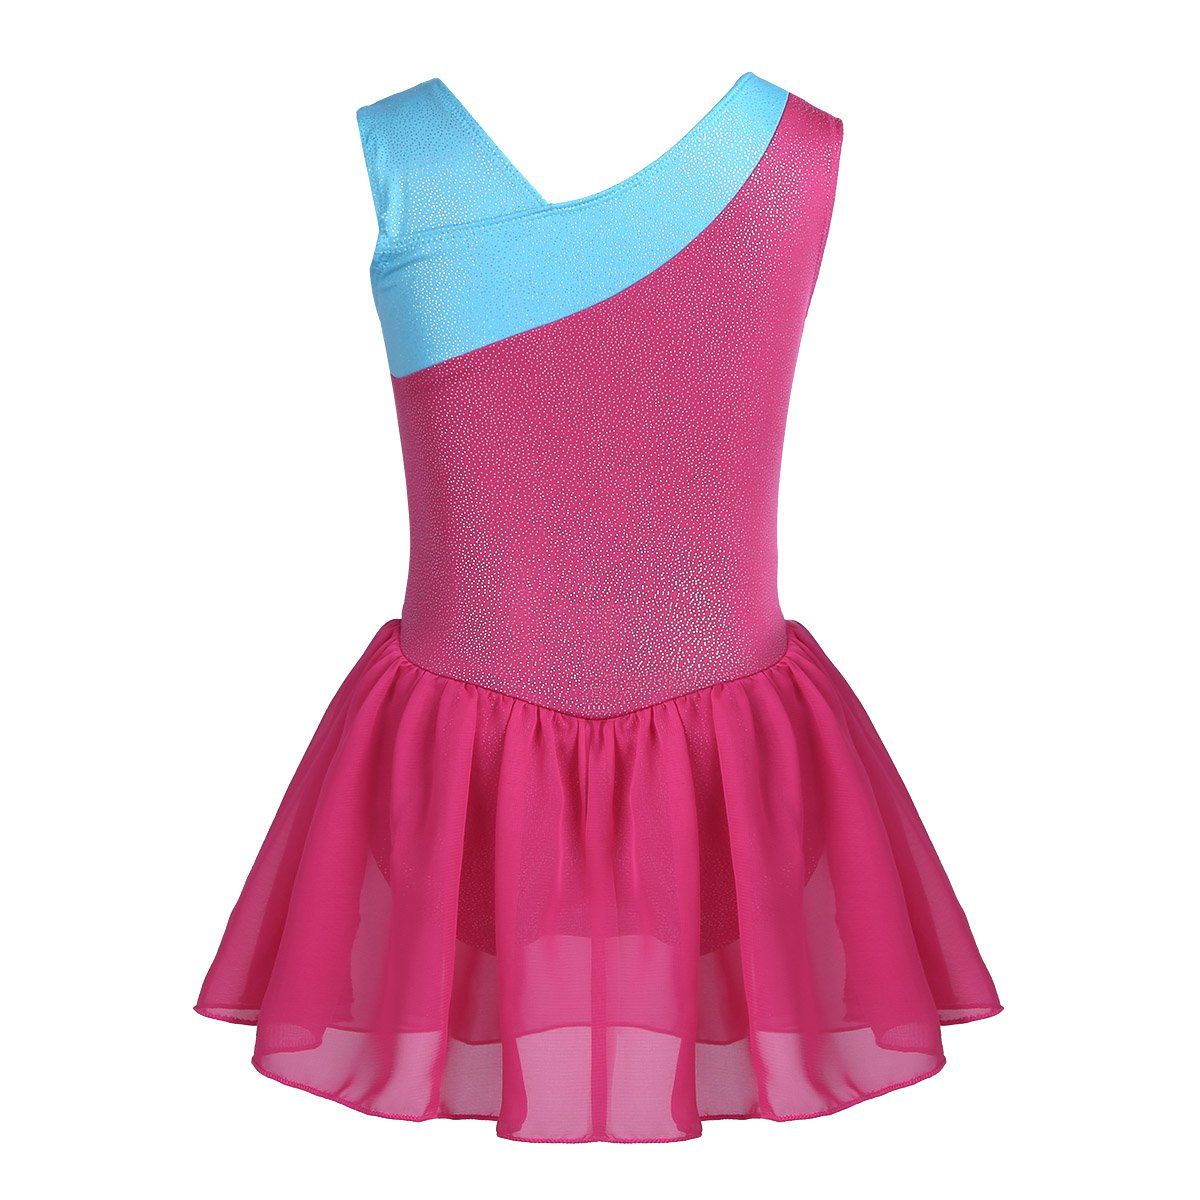 Amazon.com: TiaoBug Girls Splice Ribbon Wrap Skirted Leotard ...